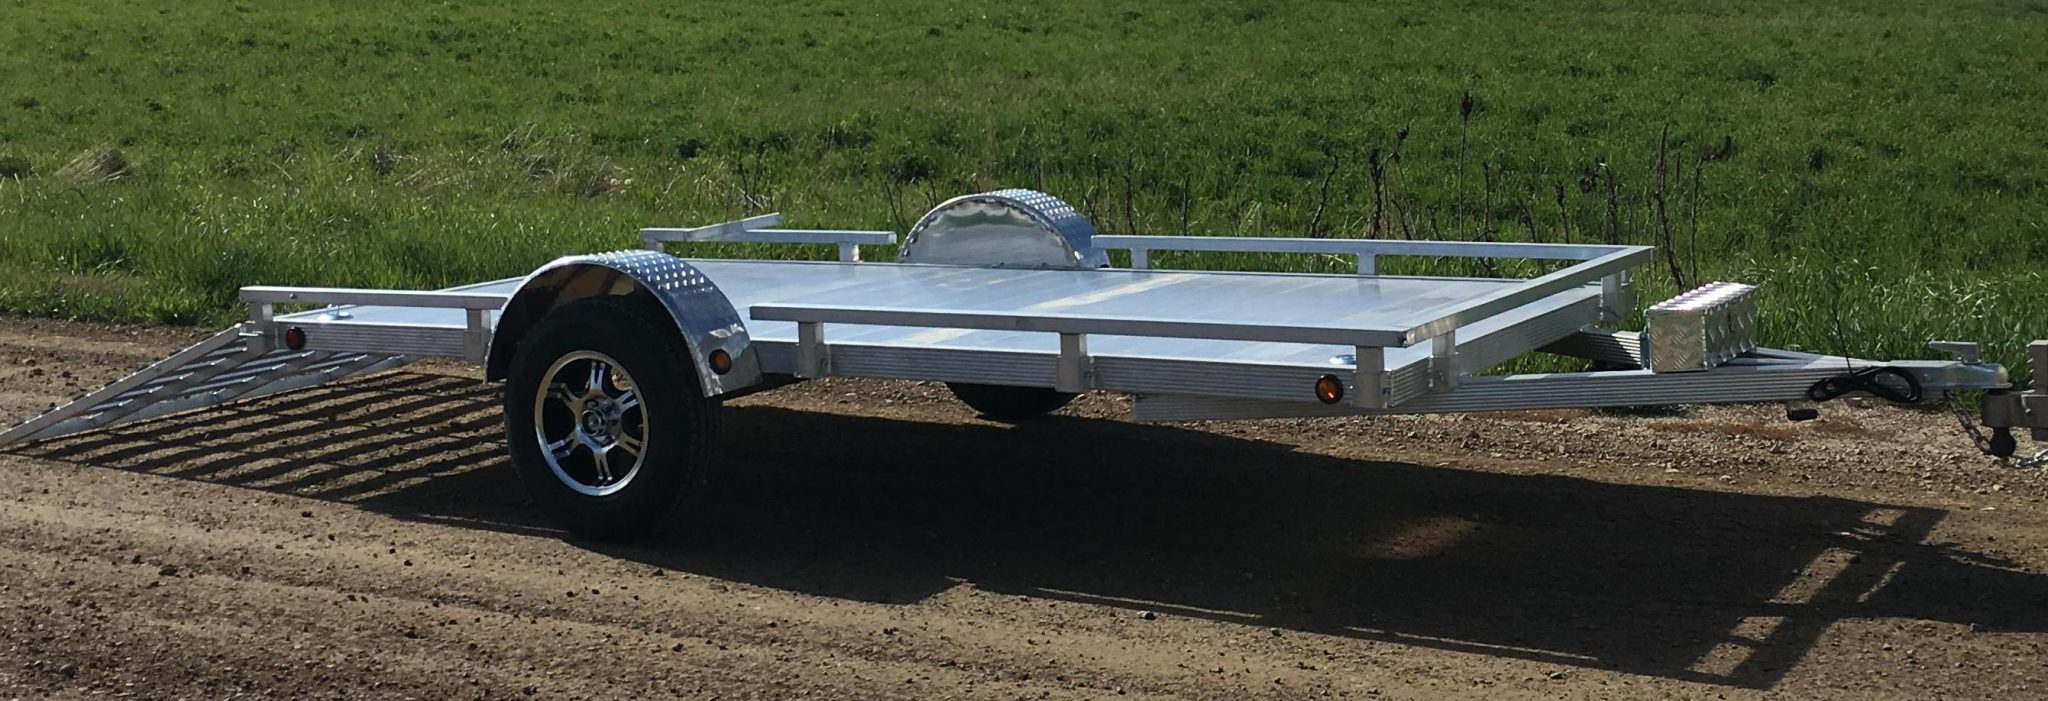 6'x12' Aluminum Utility – Silverwing Trailers